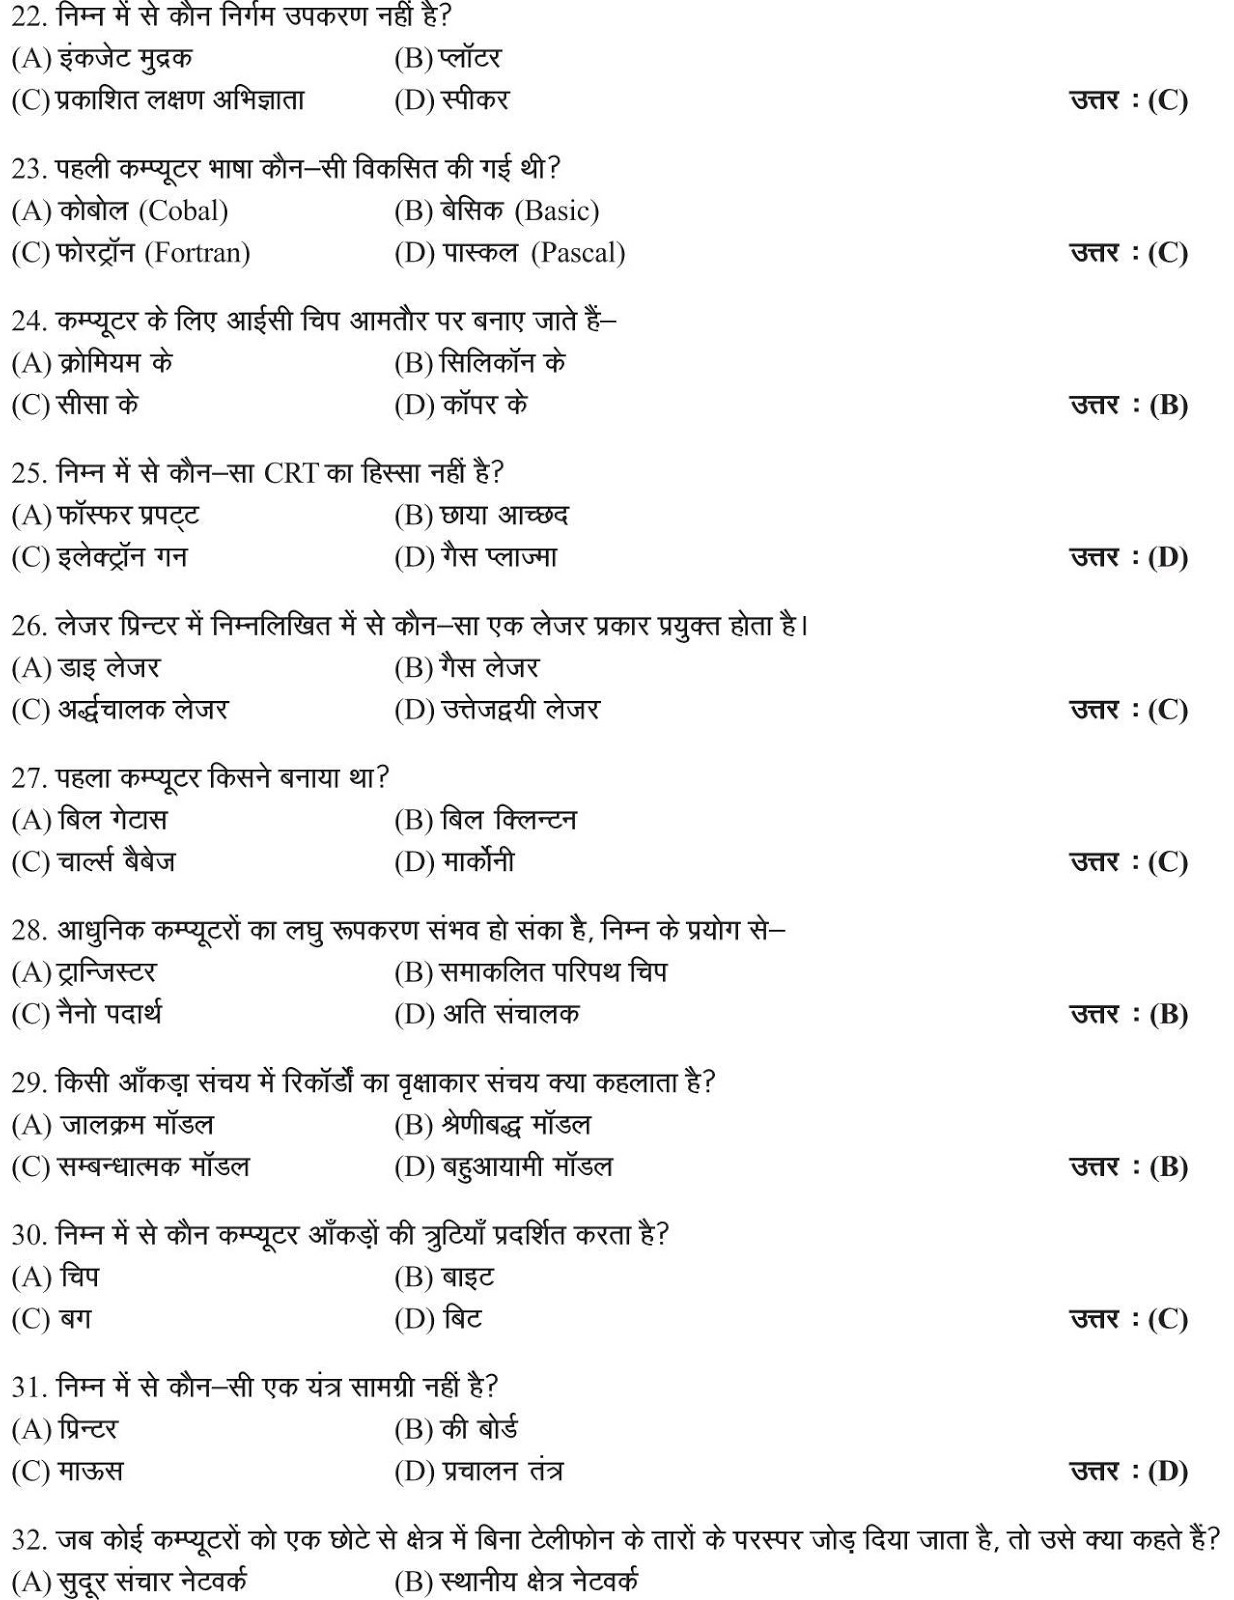 COMPUTER (GK)-GENERAL KNOWLEDGE QUESTIONS AND ANSWERS UPDATED